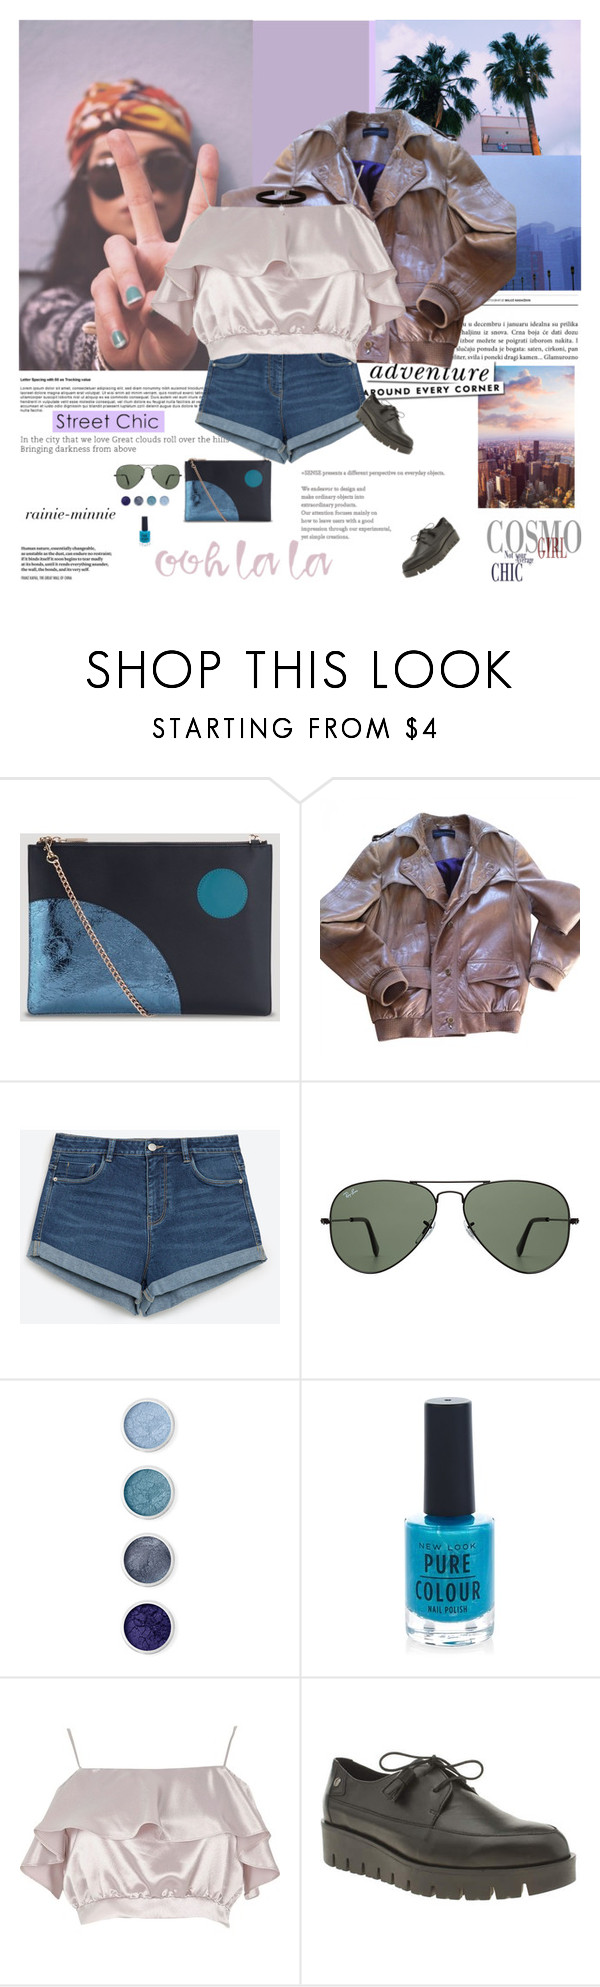 """""""Street Chic"""" by rainie-minnie ❤ liked on Polyvore featuring Whistles, Kate Spade, Zadig & Voltaire, Zara, Ray-Ban, Terre Mère, New Look, River Island and Red Or Dead"""